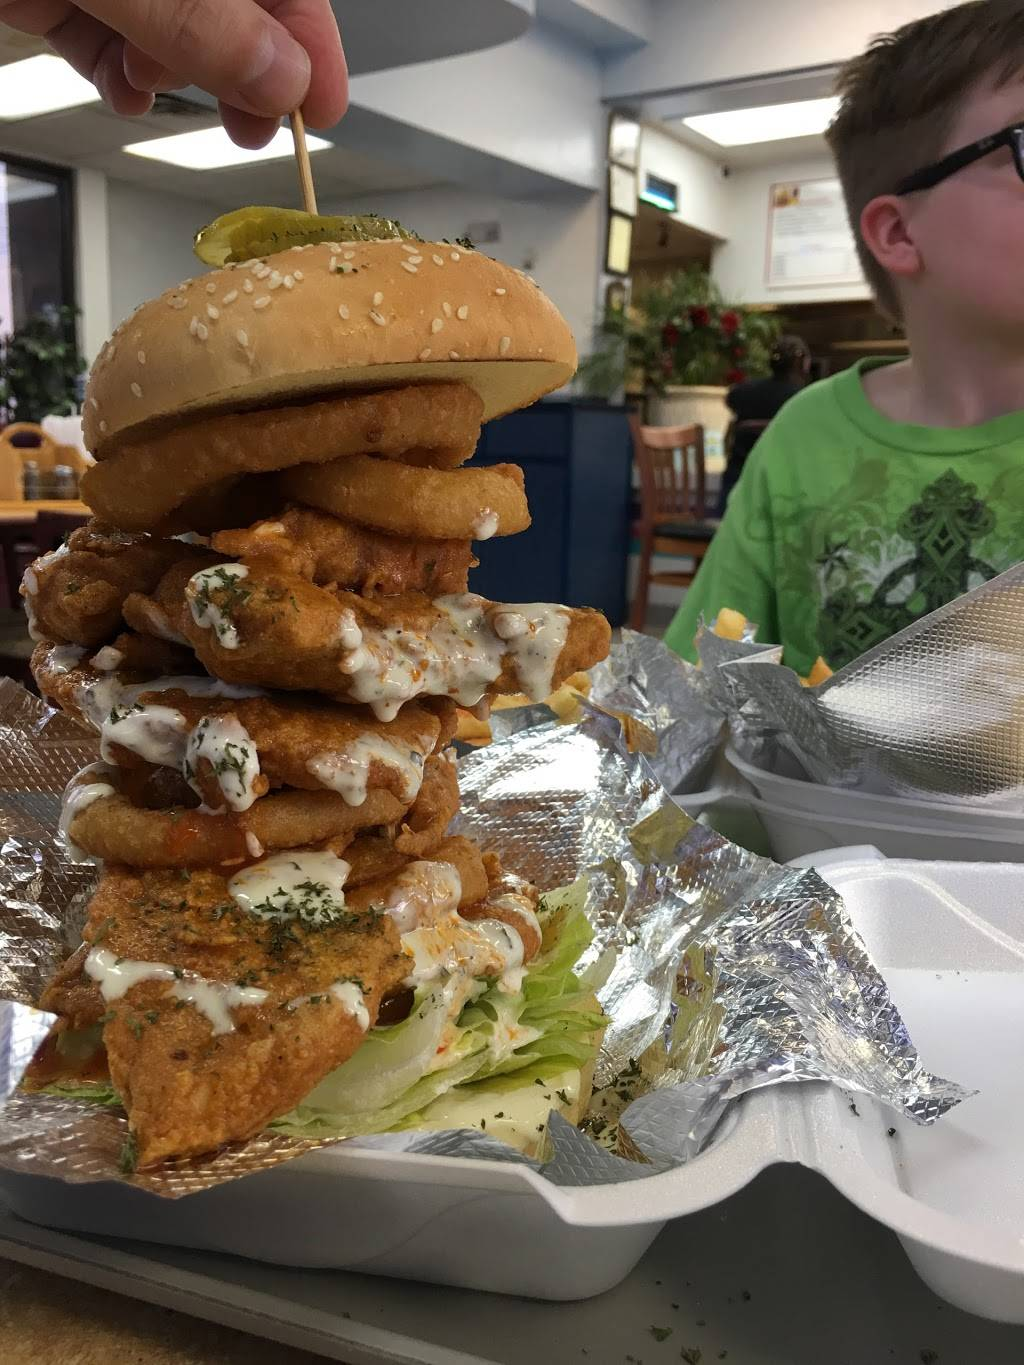 The Chicken Ranch   restaurant   331 W Dixon Blvd, Shelby, NC 28152, USA   7044192466 OR +1 704-419-2466